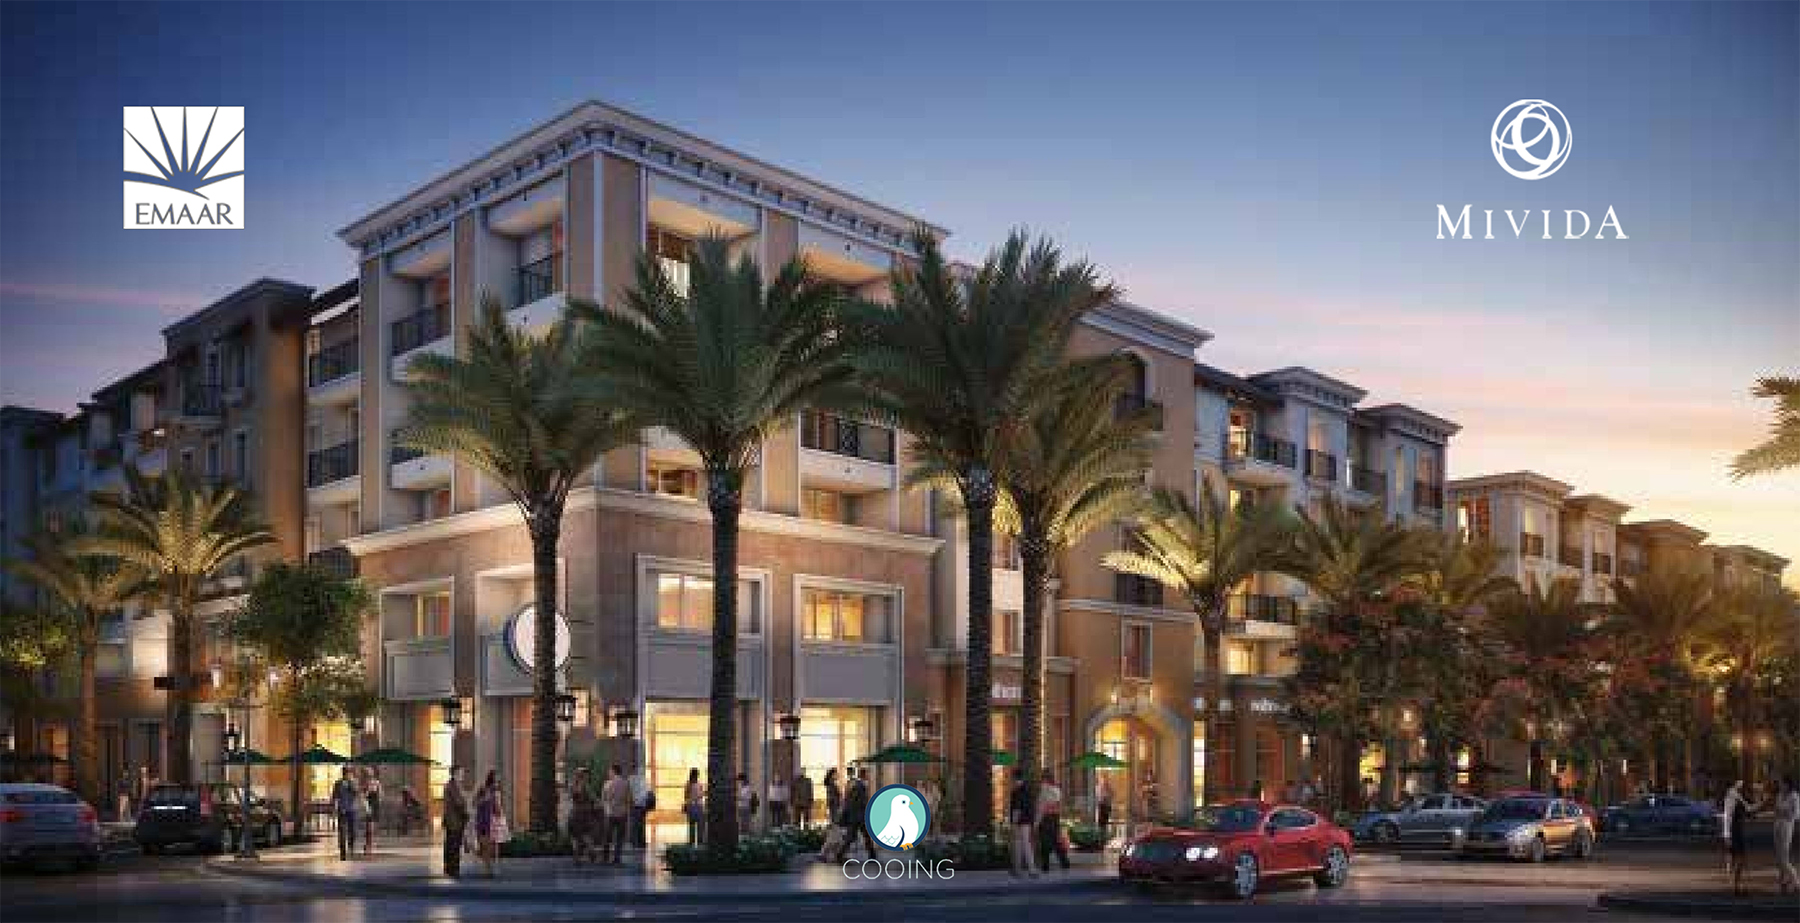 Apartment 156 meters at the best price in Mivida